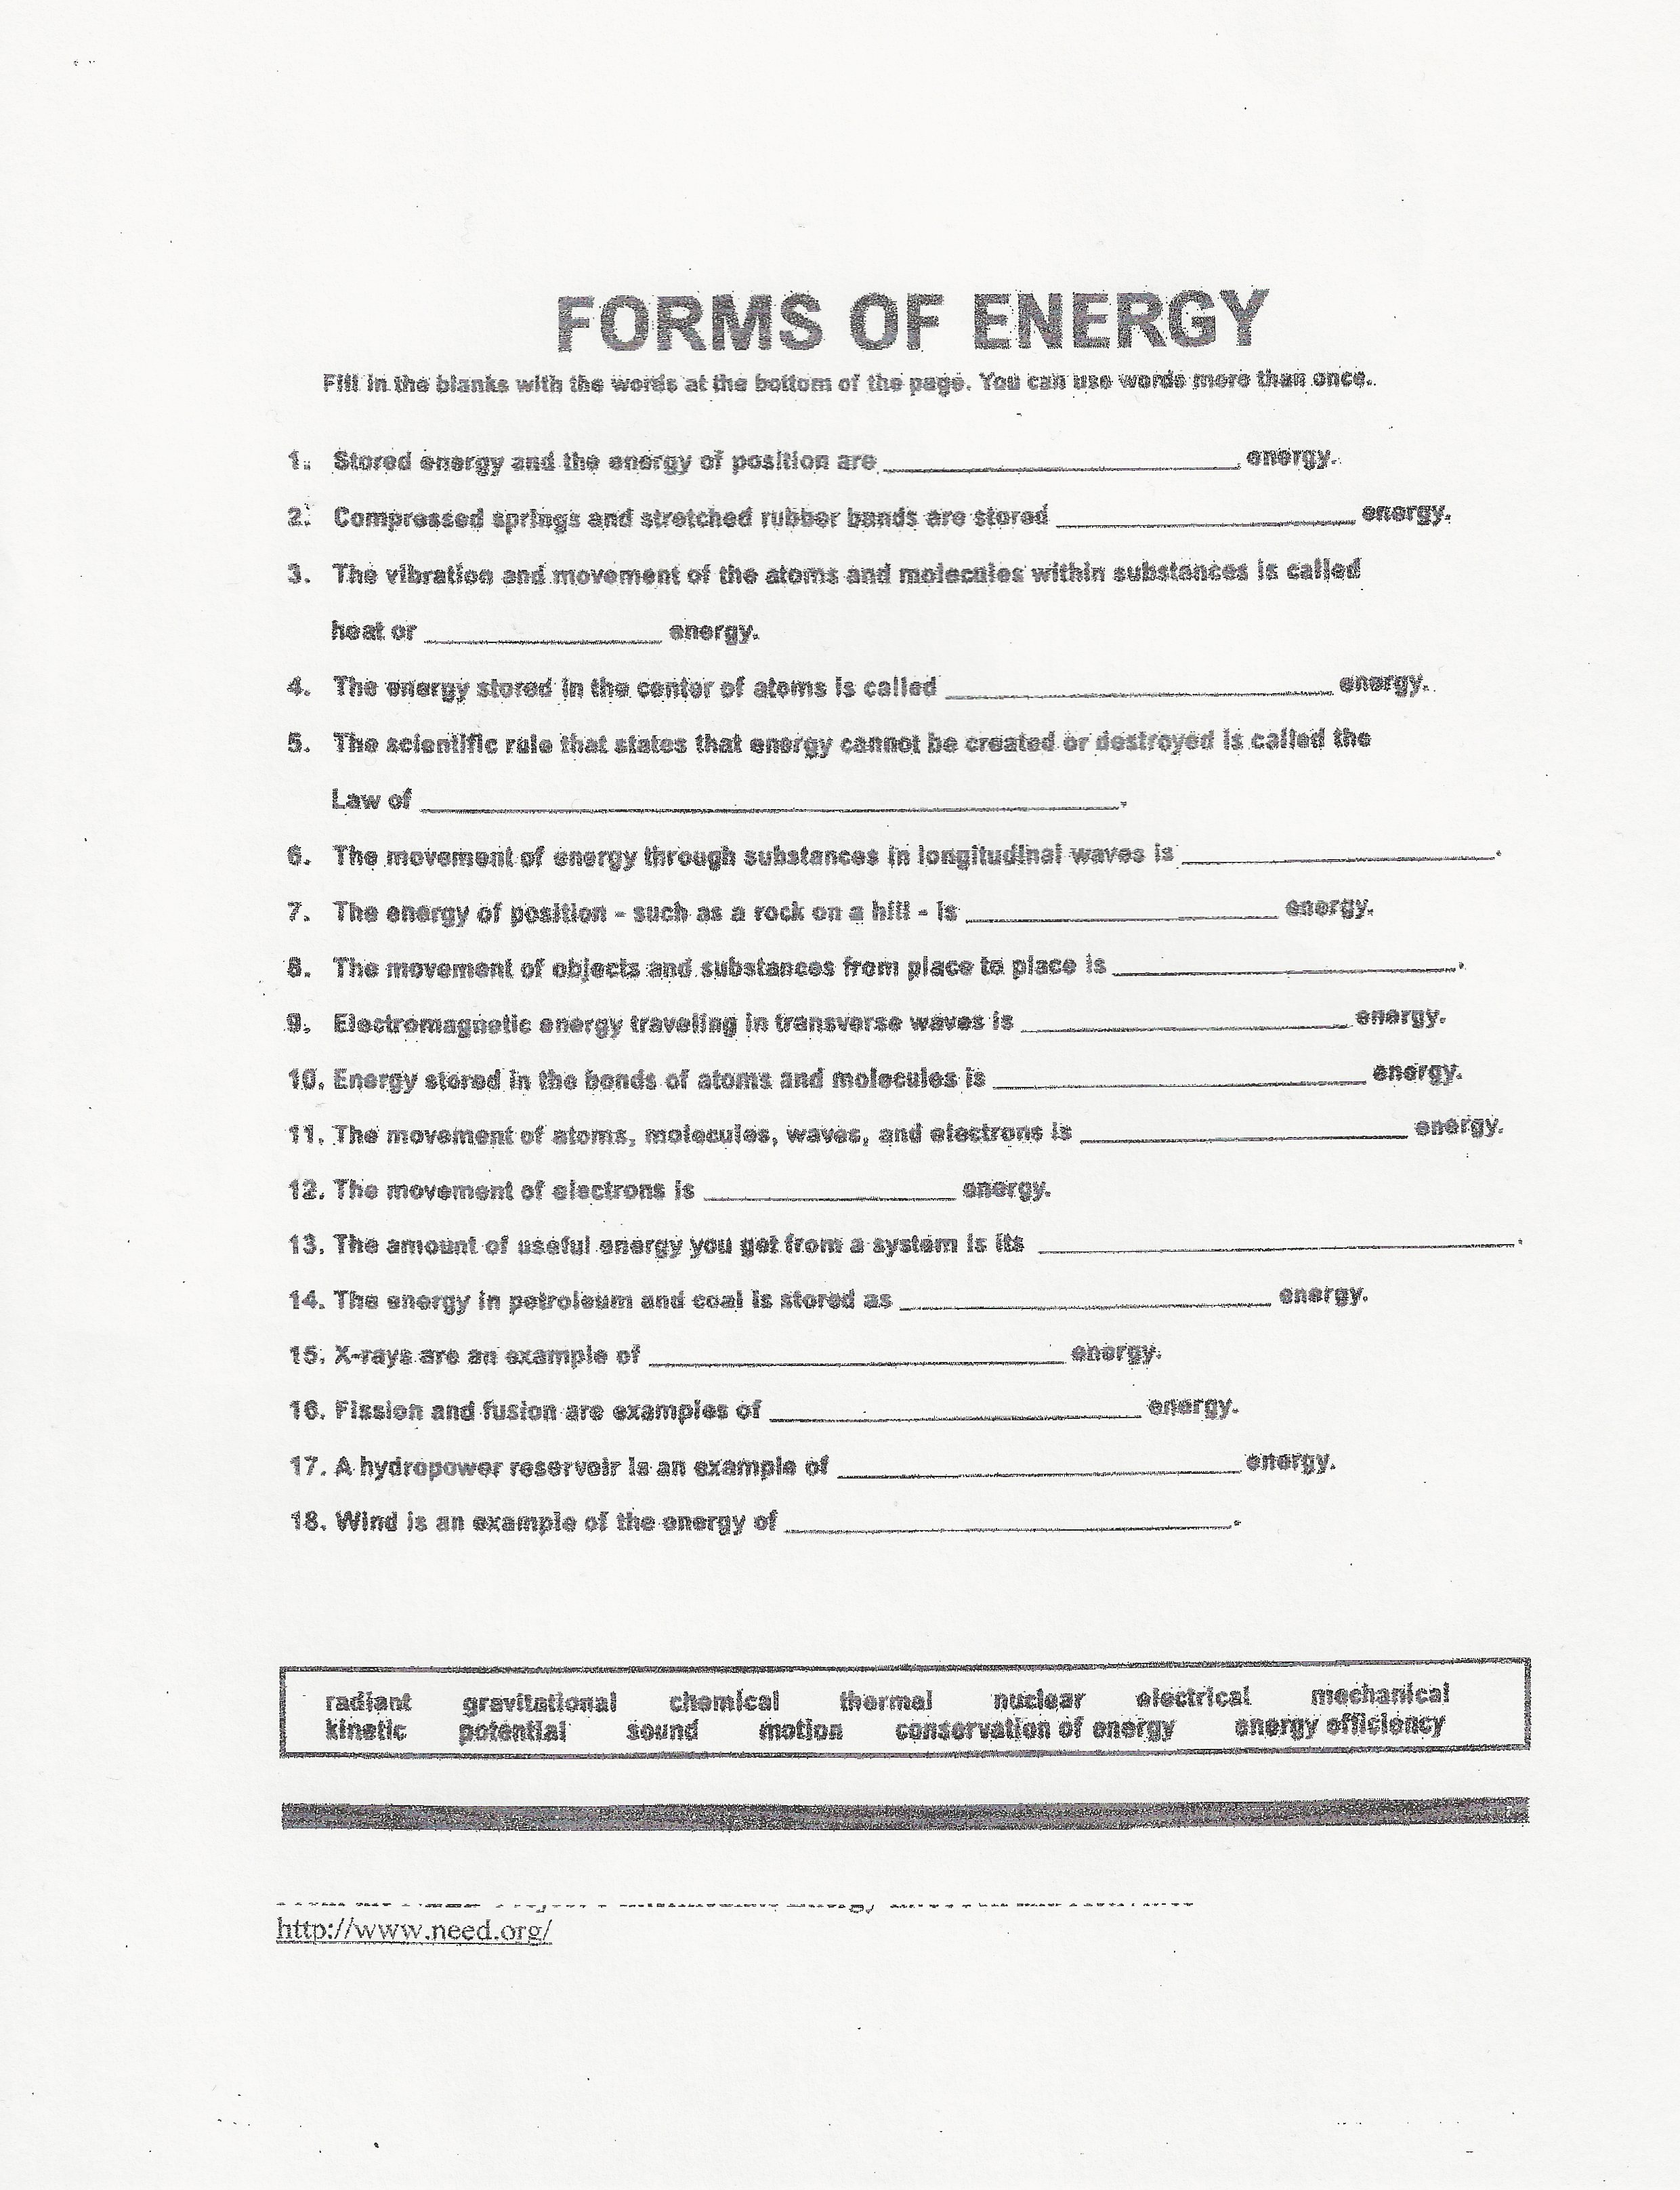 Motion And Electricity 4th Grade Worksheet